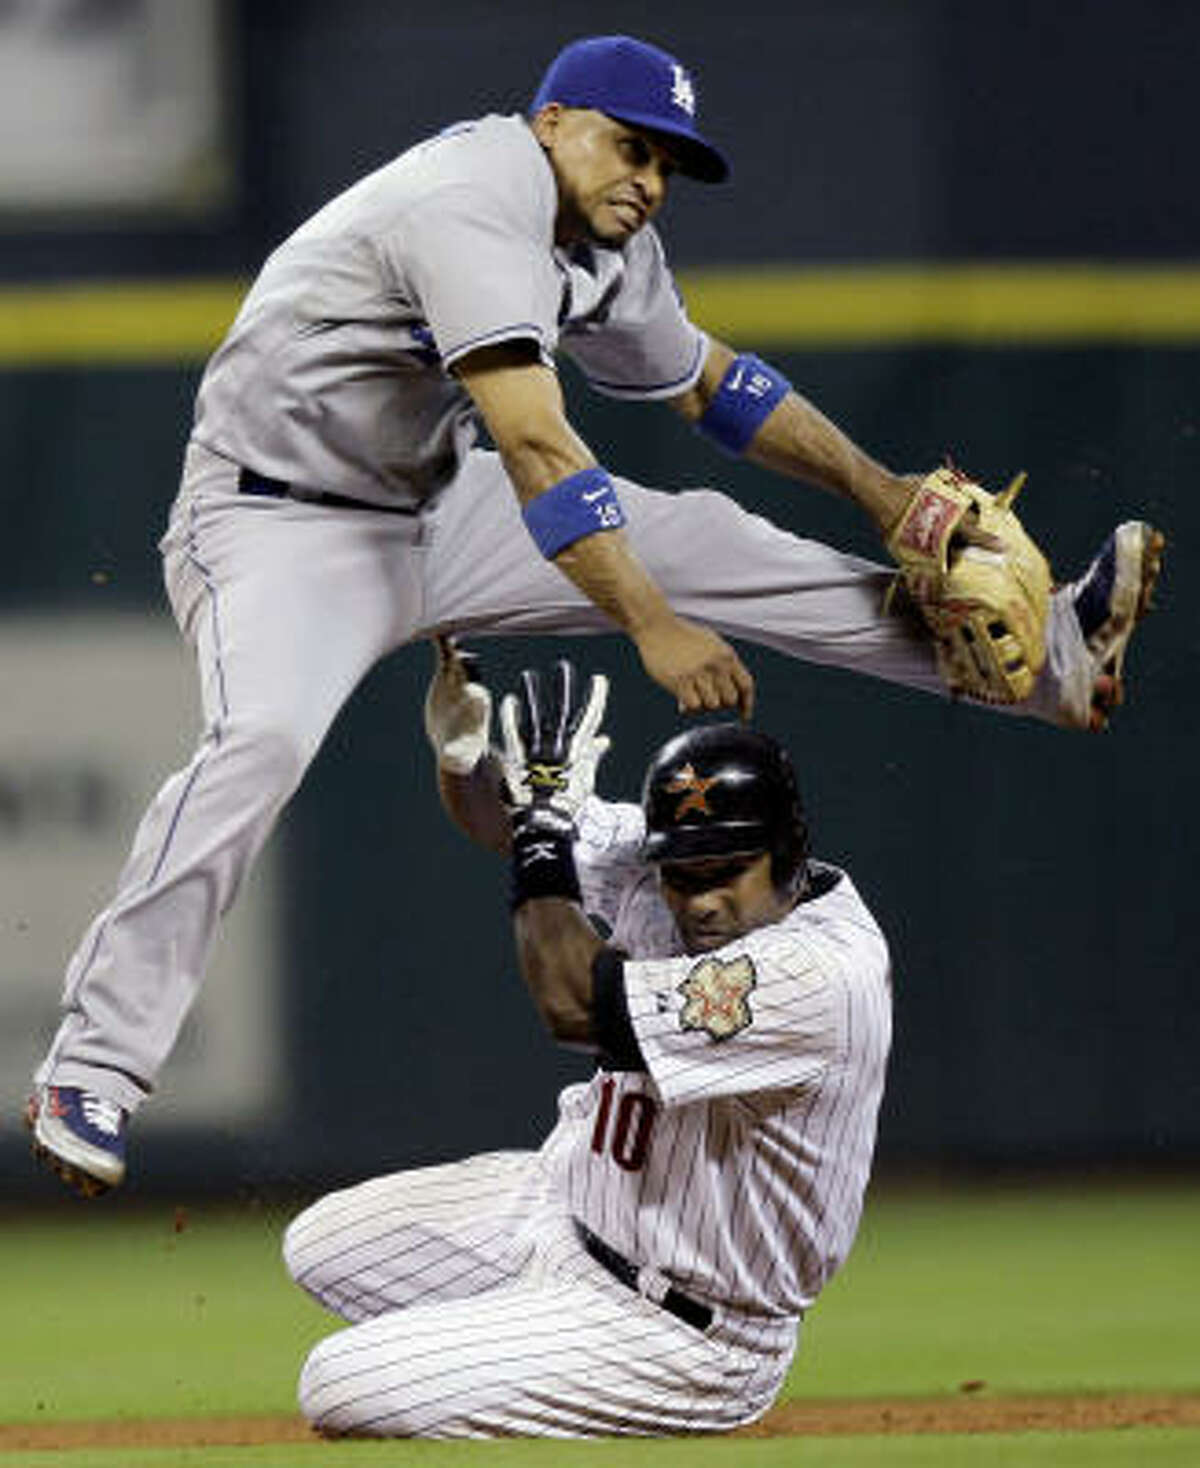 Los Angeles Dodgers shortstop Rafael Furca leaps over Houston's Miguel Tejada while throwing to first base to complete a double play to end the sixth inning of Thursday's game at Minute Maid Park. The Astros lost, 2-0.